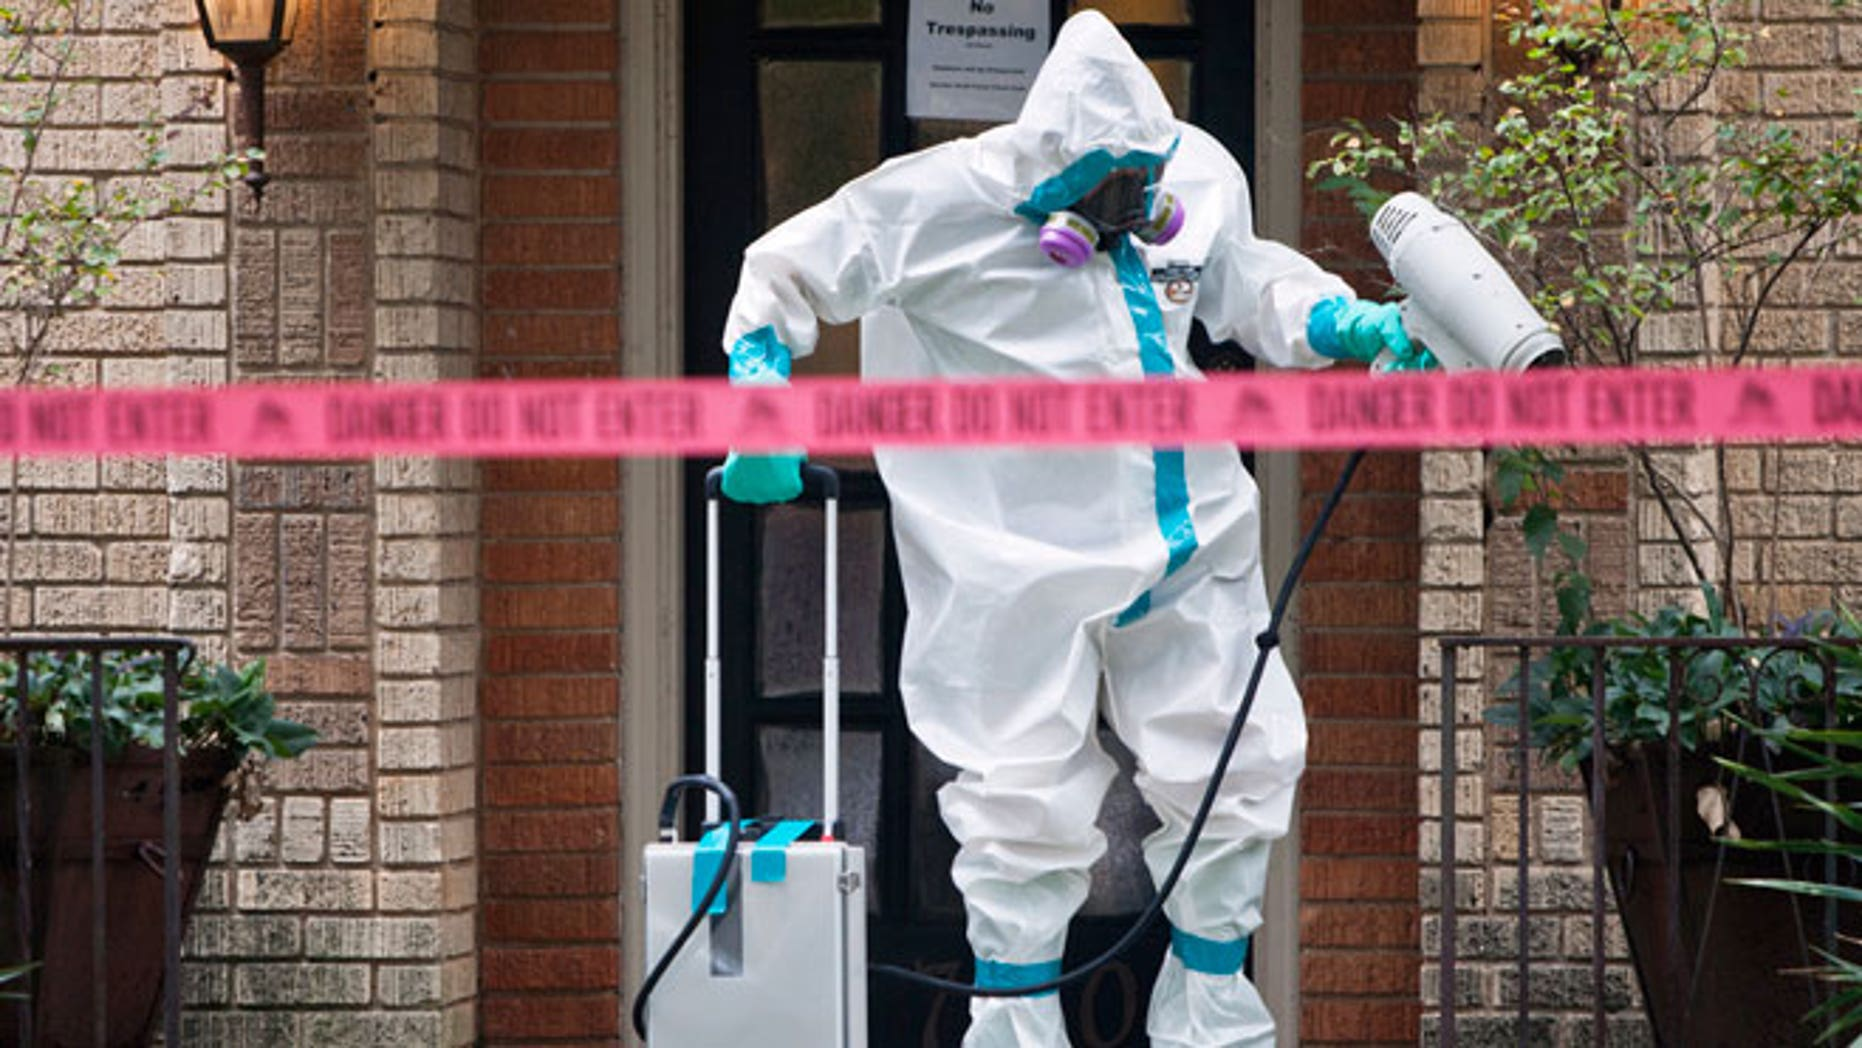 A member of the CG Environmental HazMat team disinfects the entrance to the residence of the first health worker at the Texas Health Presbyterian Hospital to contract Ebola in Dallas, Texas, October 12, 2014.